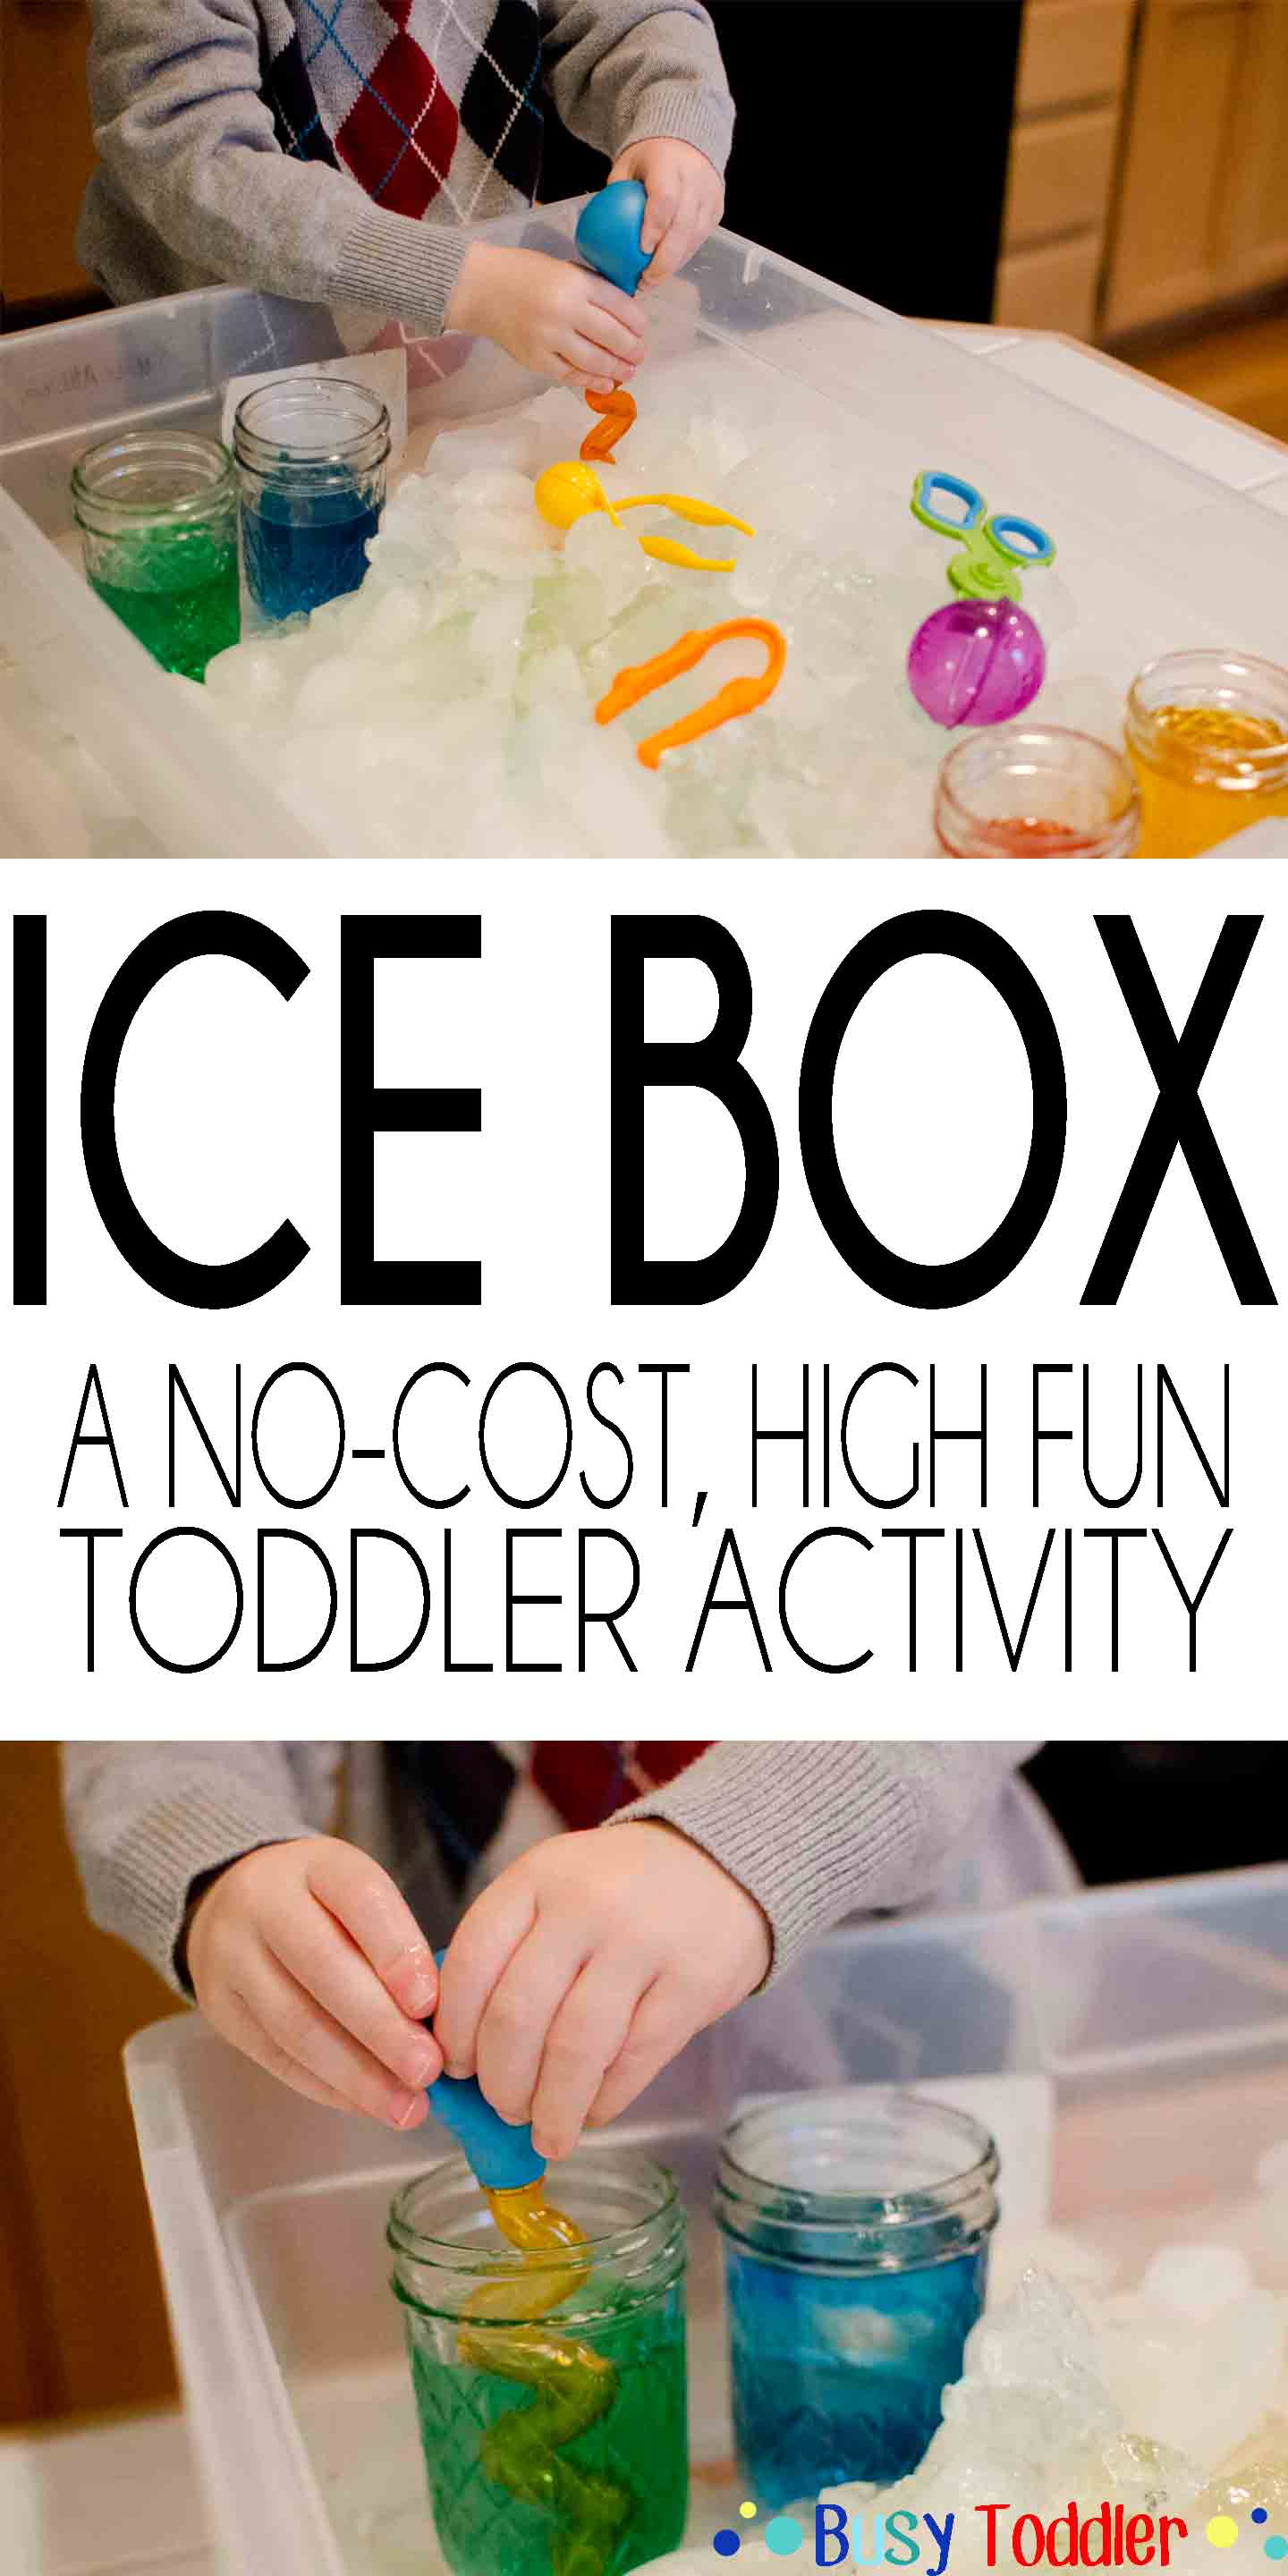 ICE BOX: A no cost, high fun toddler activity